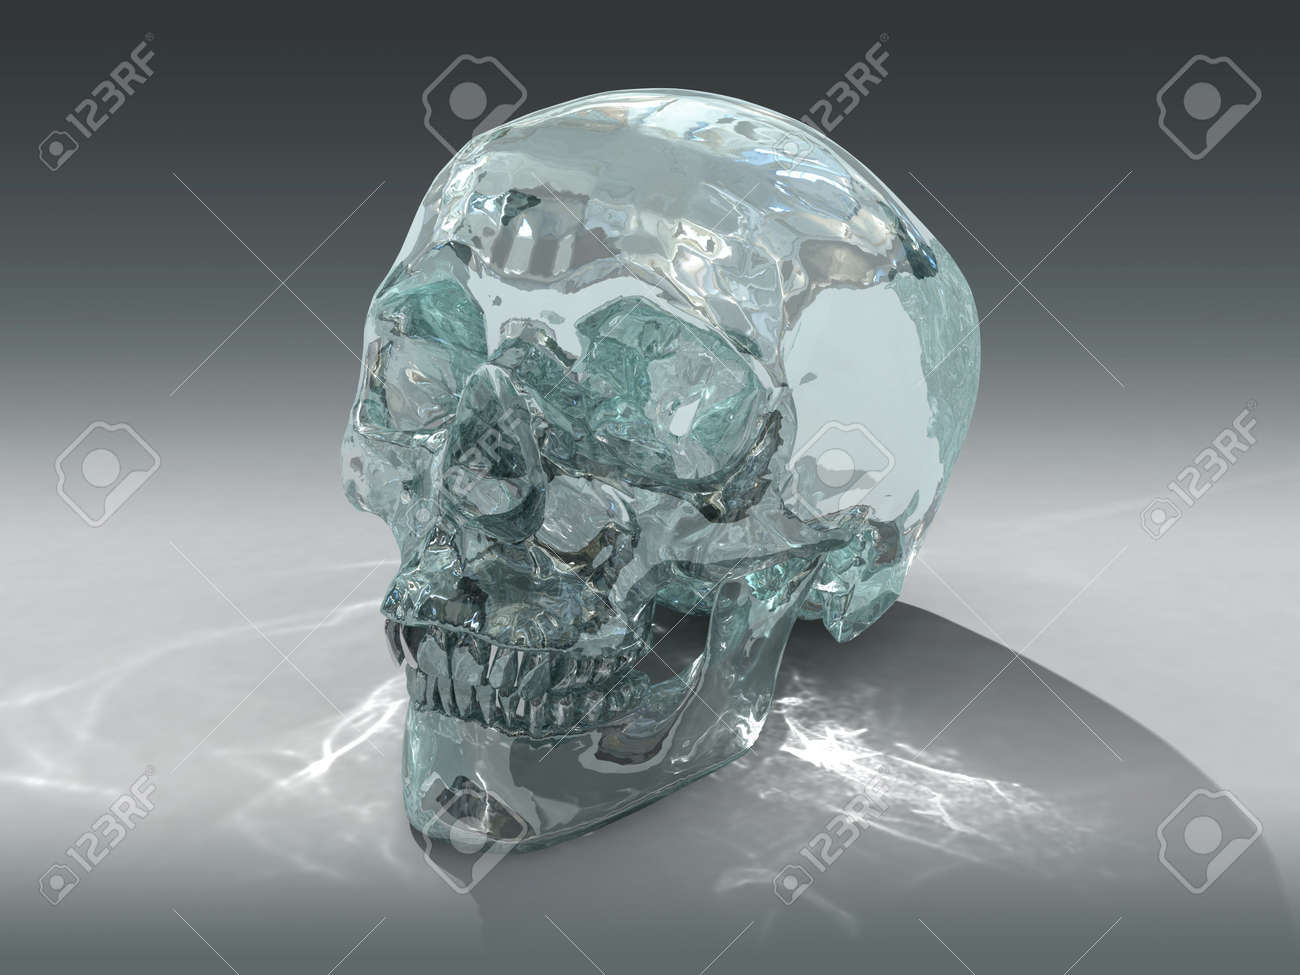 3D model of a human Crystal Skull, claimed to be of pre-Colombian Mesoamerican origin Stock Photo - 6907111